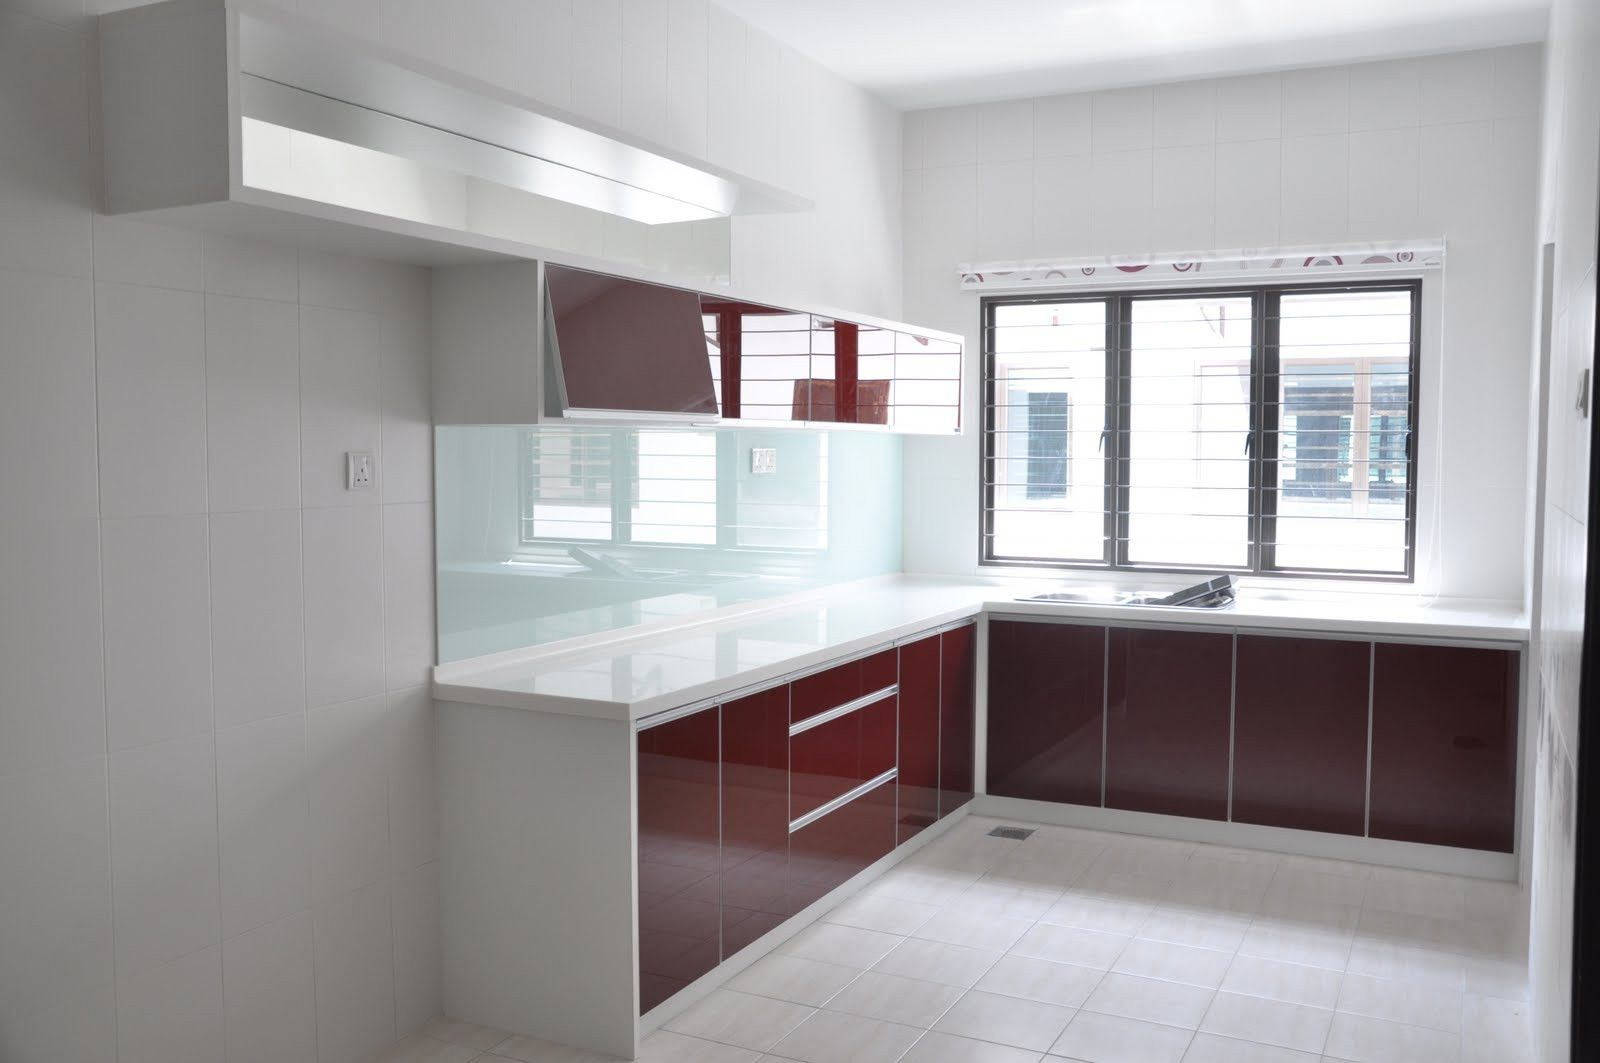 77 Acrylic Kitchen Cabinets Pros And Cons Remodeling Ideas For